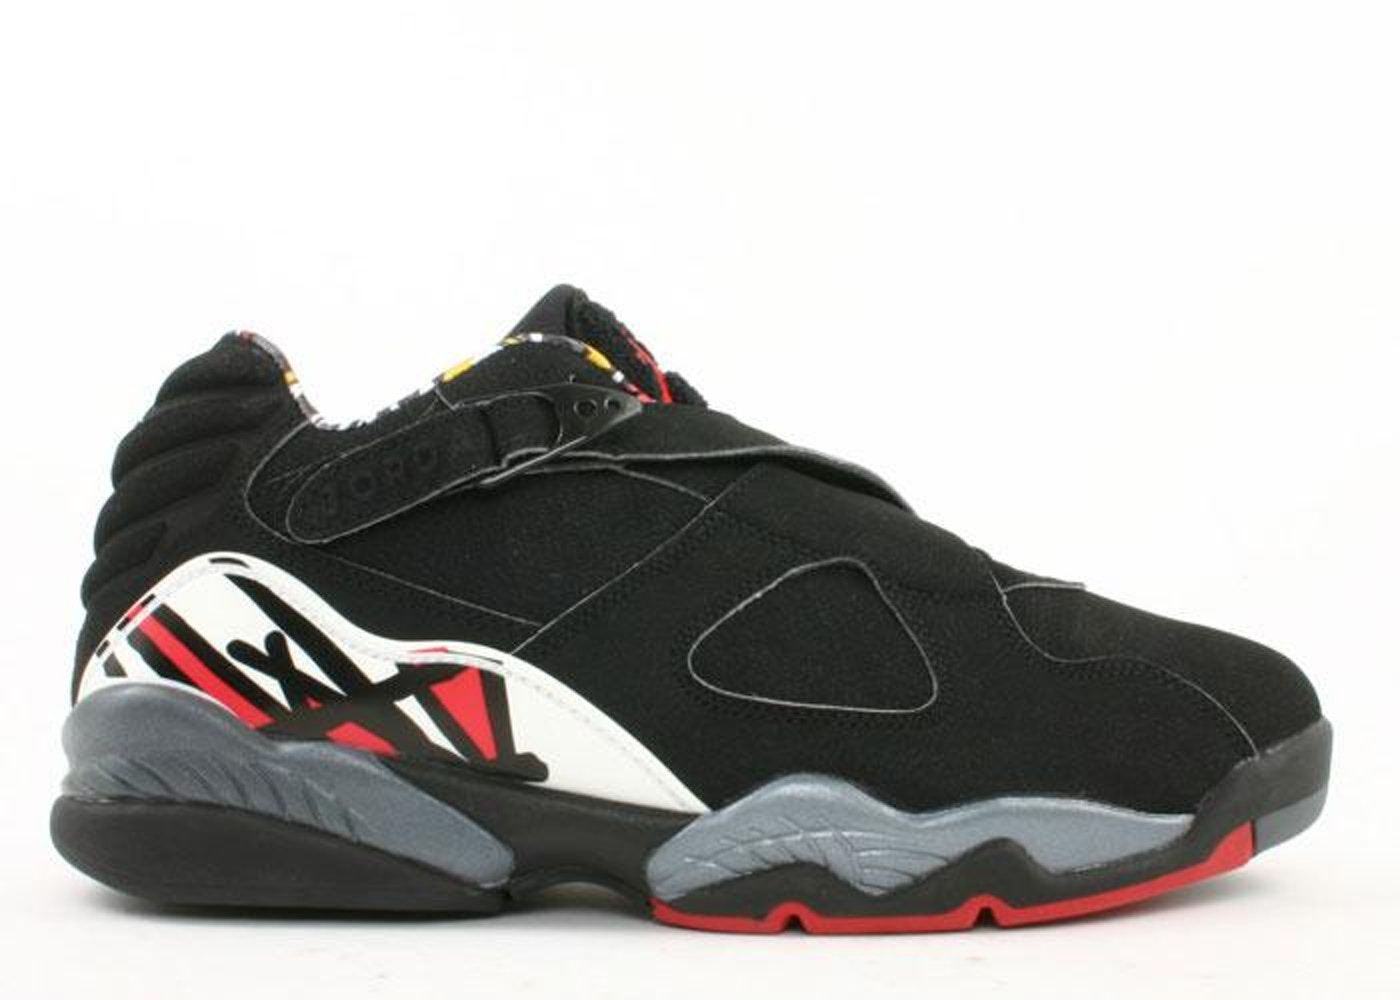 ee45c5661f4 Sell. or Ask. Size 9. View All Bids. Jordan 8 Retro Low Playoffs (2003)